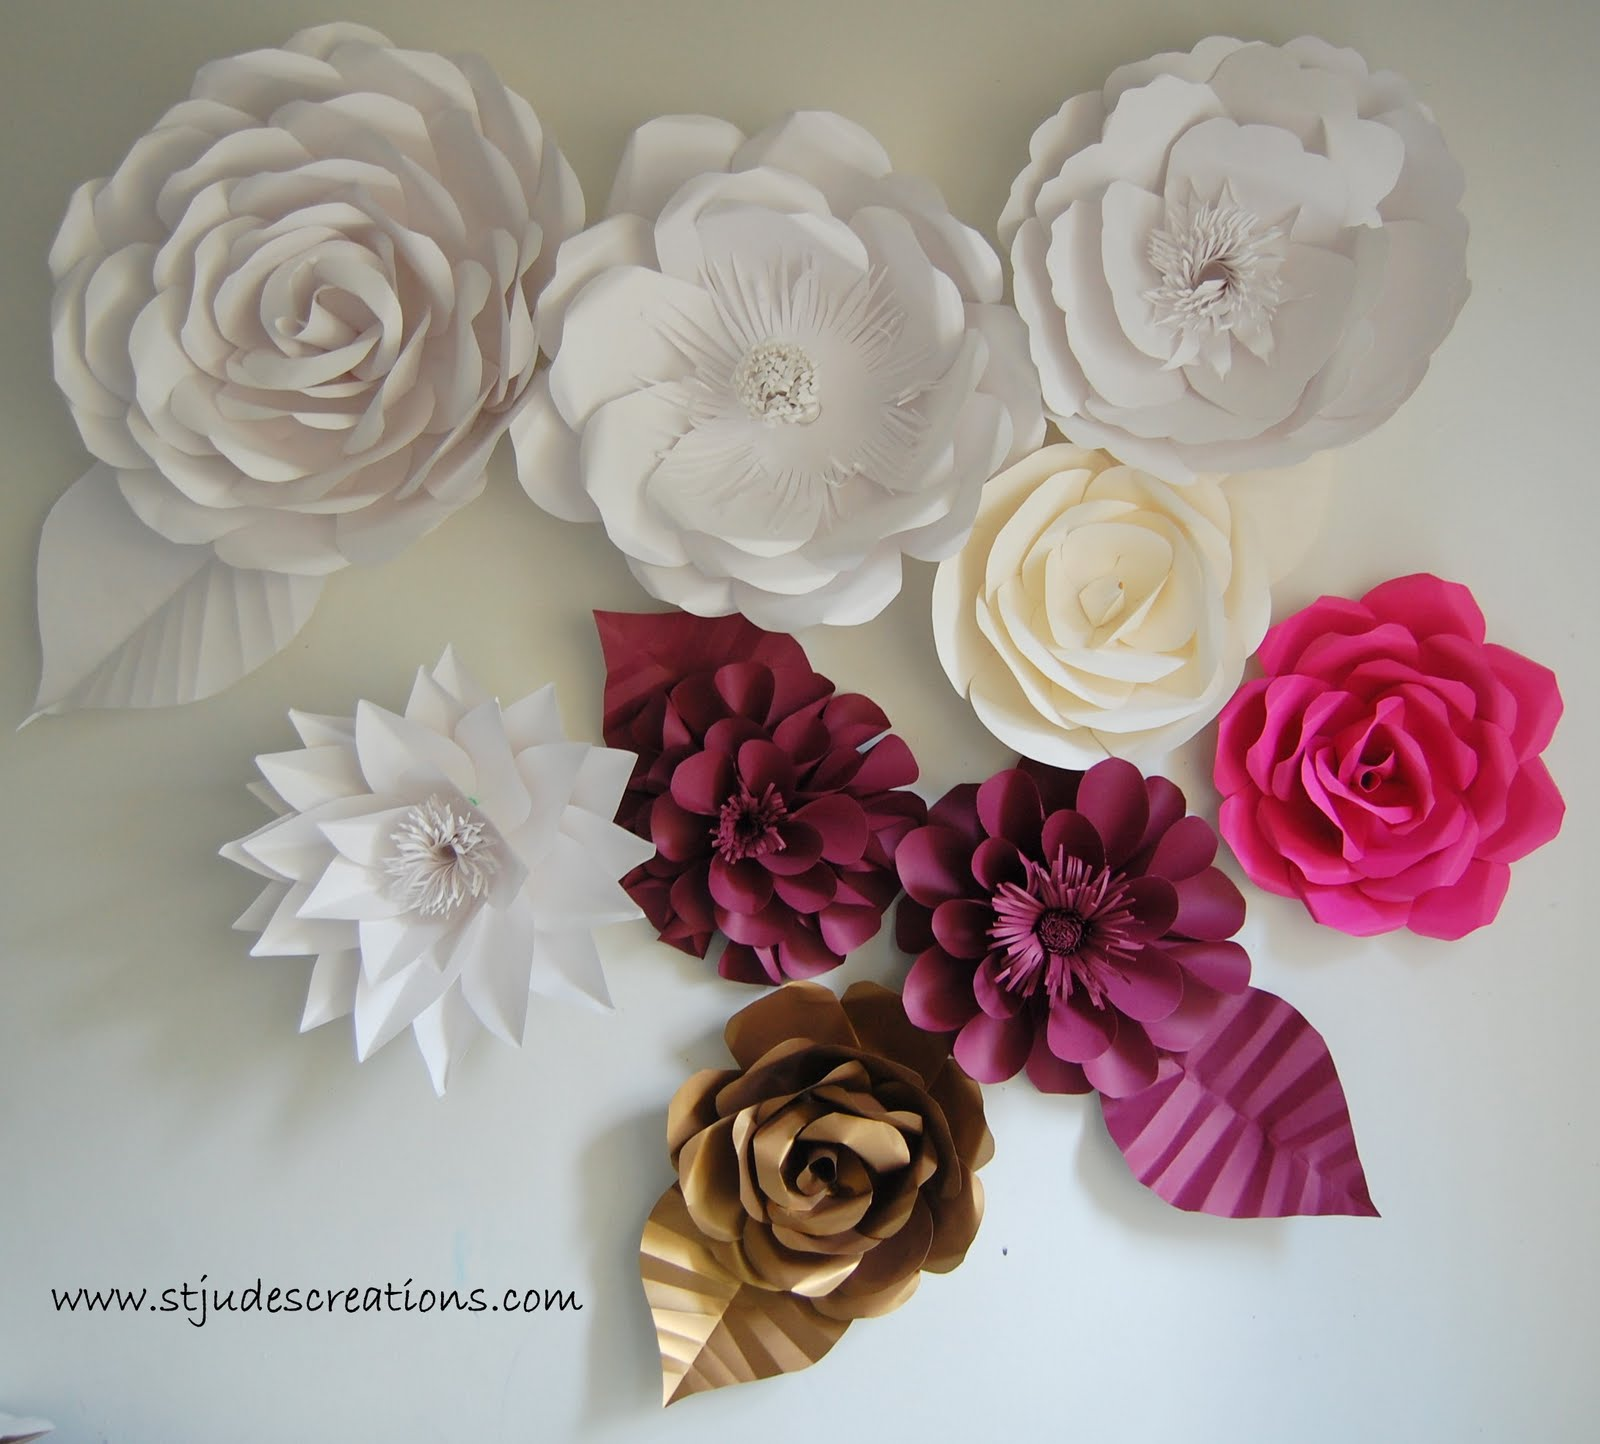 Paper Decorations To Make At Home Oversized Paper Flowers Handmade Paper Flowers By Maria